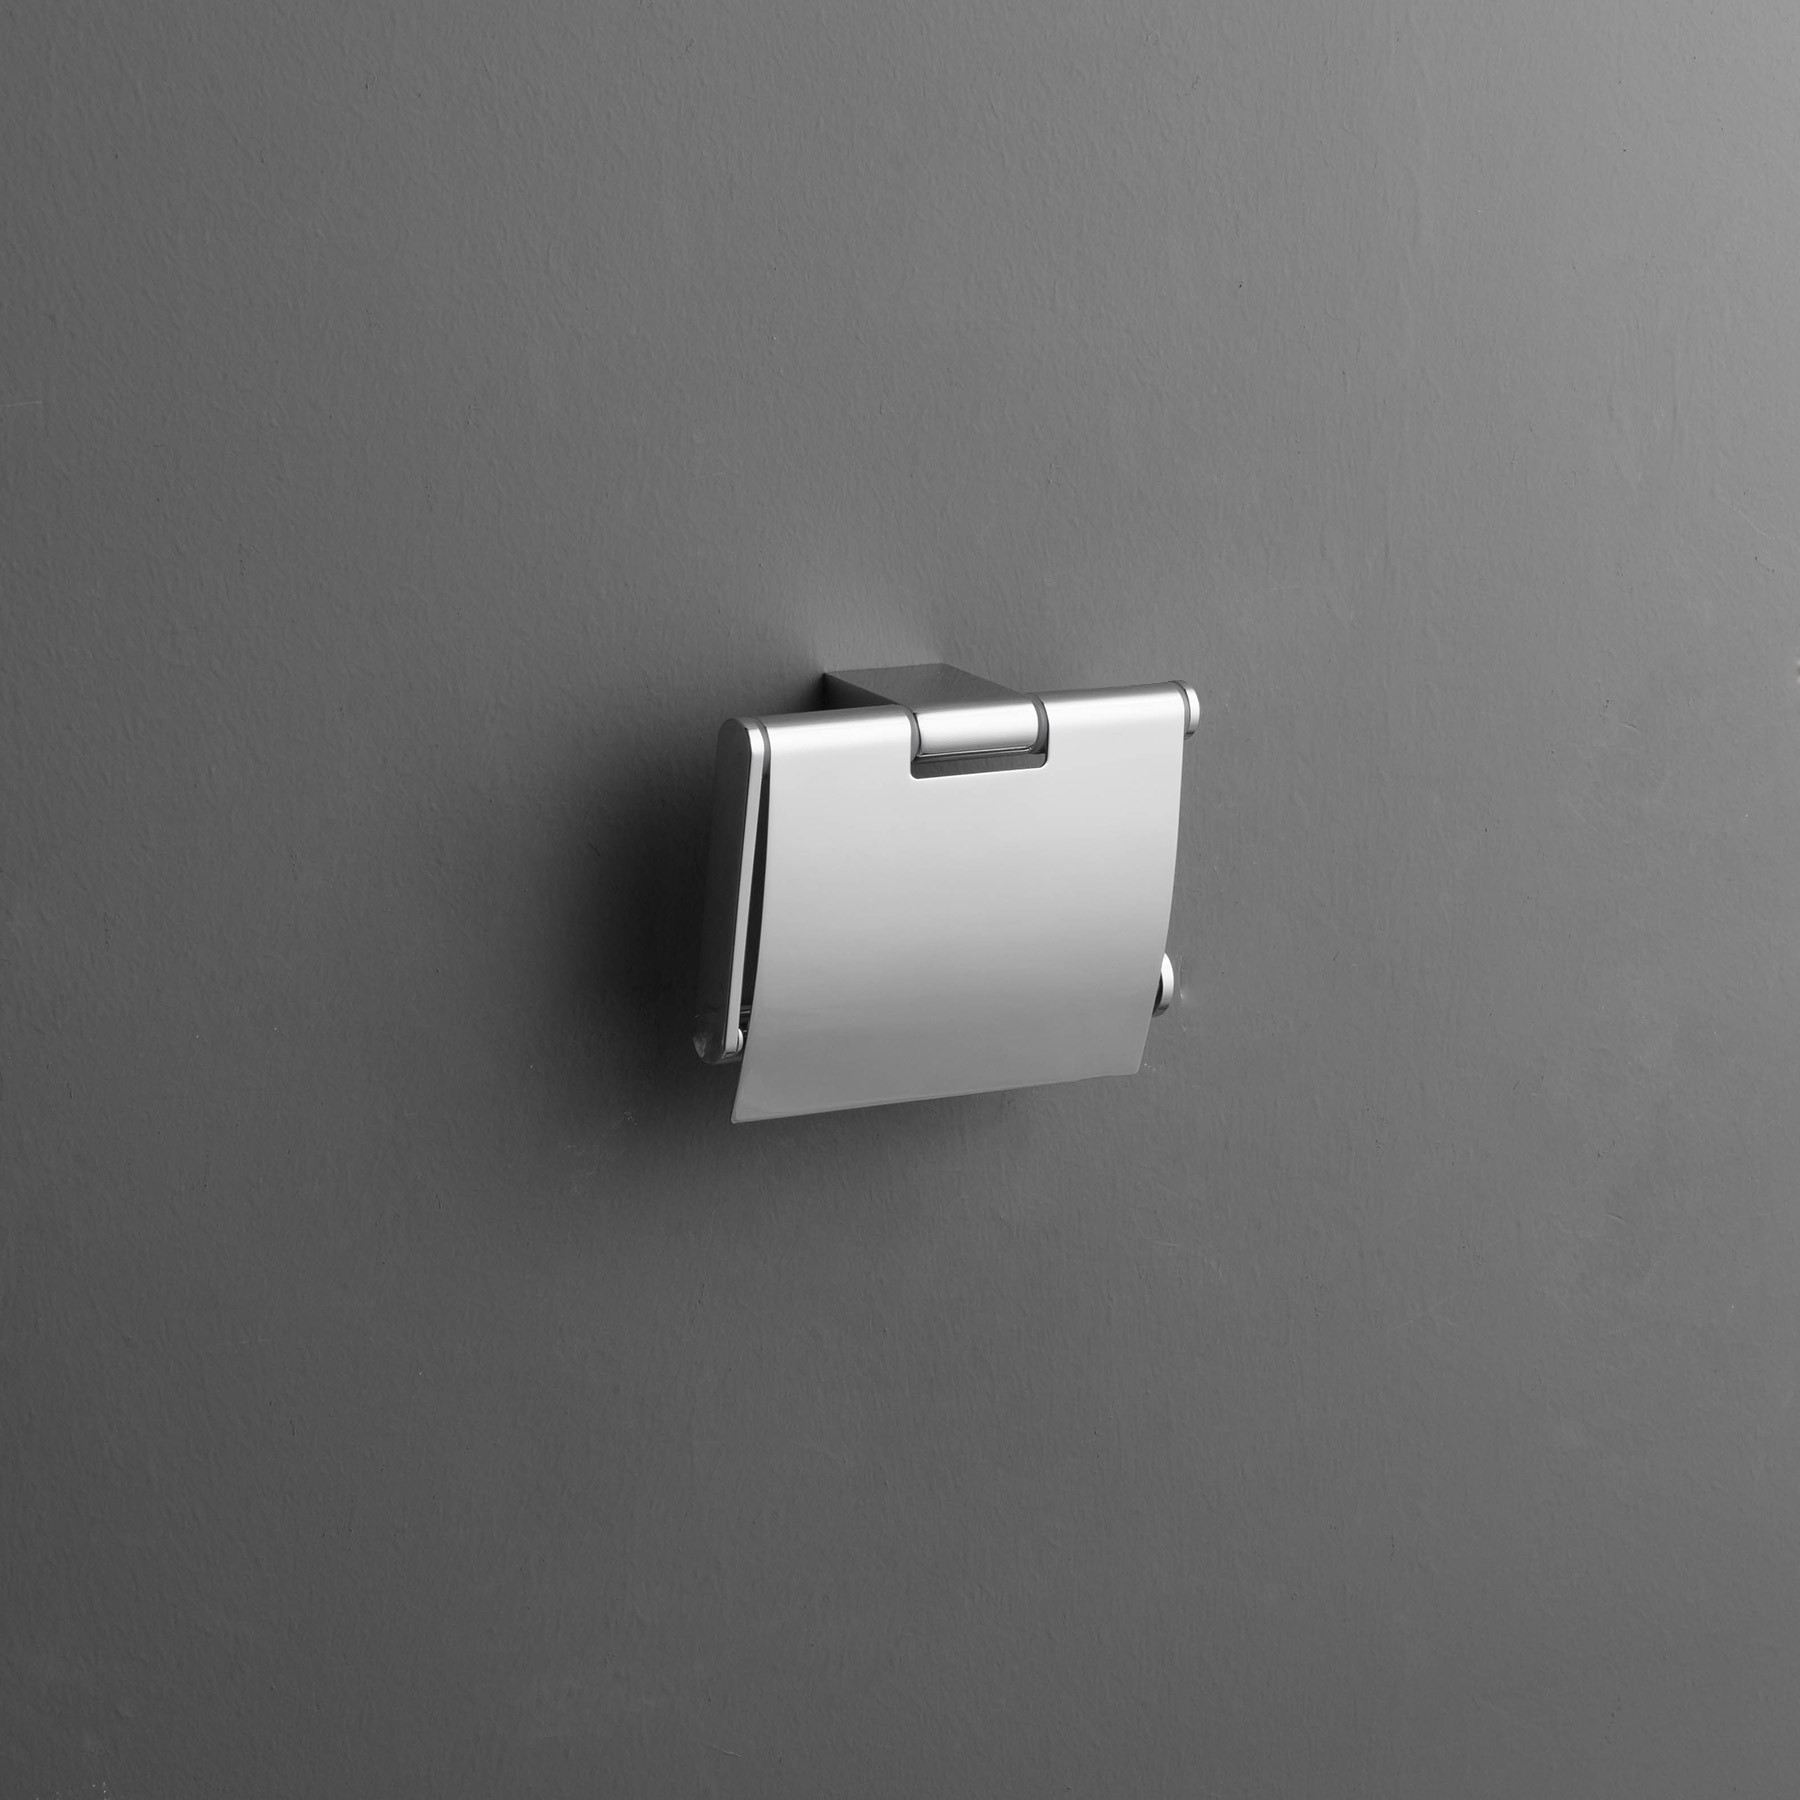 Wall Mounted Toilet Paper Roll Holder